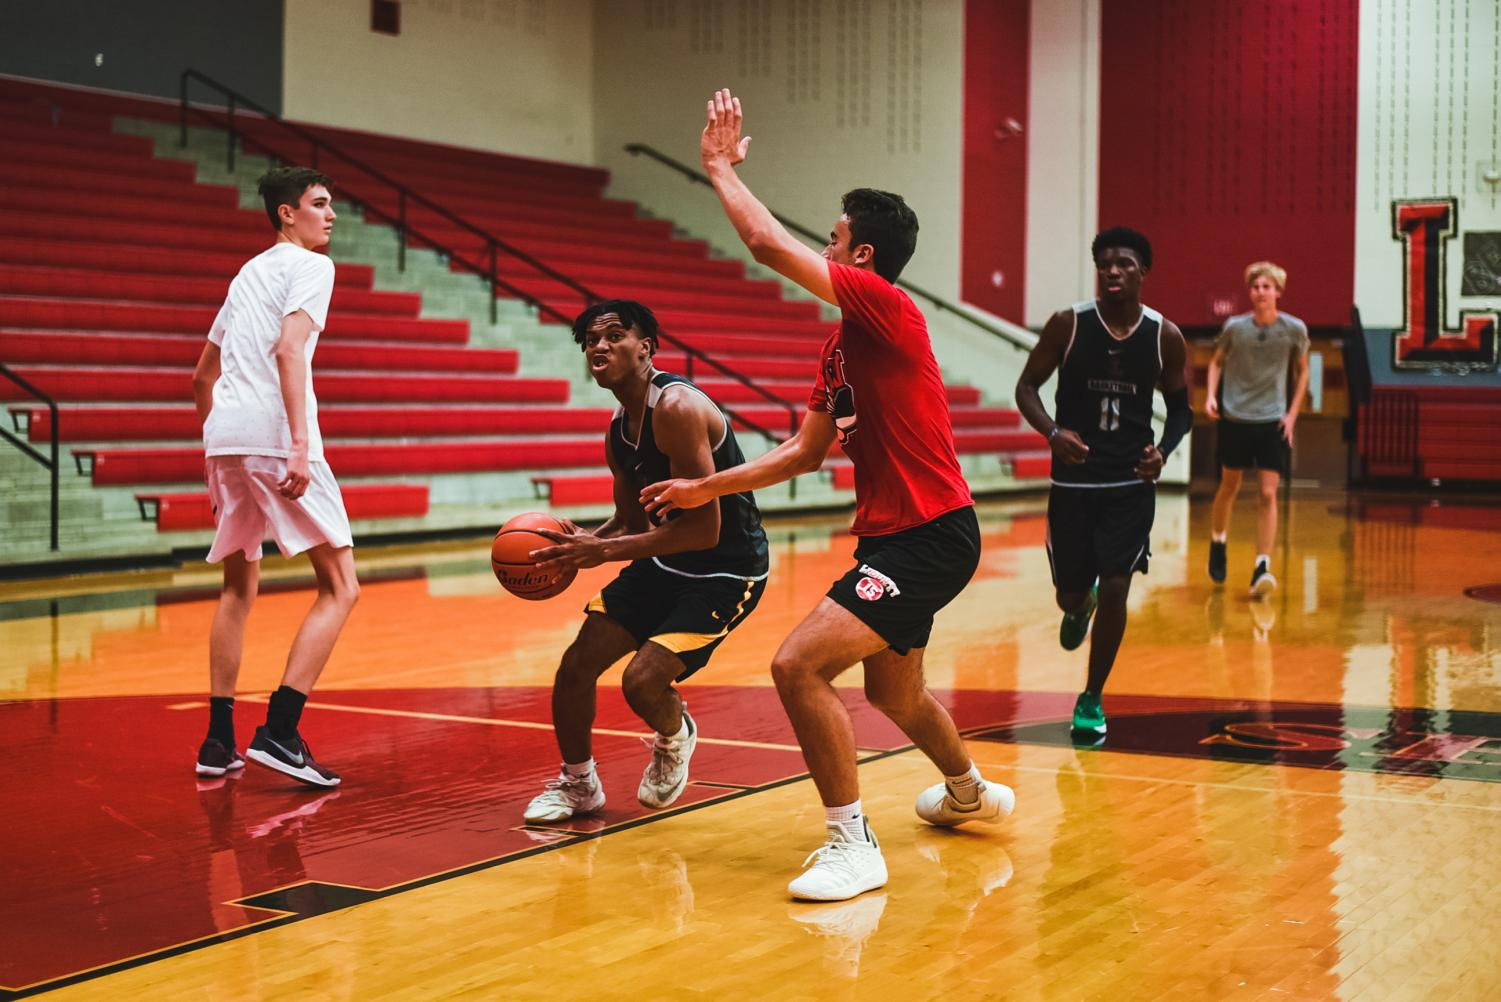 Boys' basketball gears up for the district season in their final non-district tournament on Thursday. Redhawks will kick off their district season next week on Tuesday against Frisco High School.